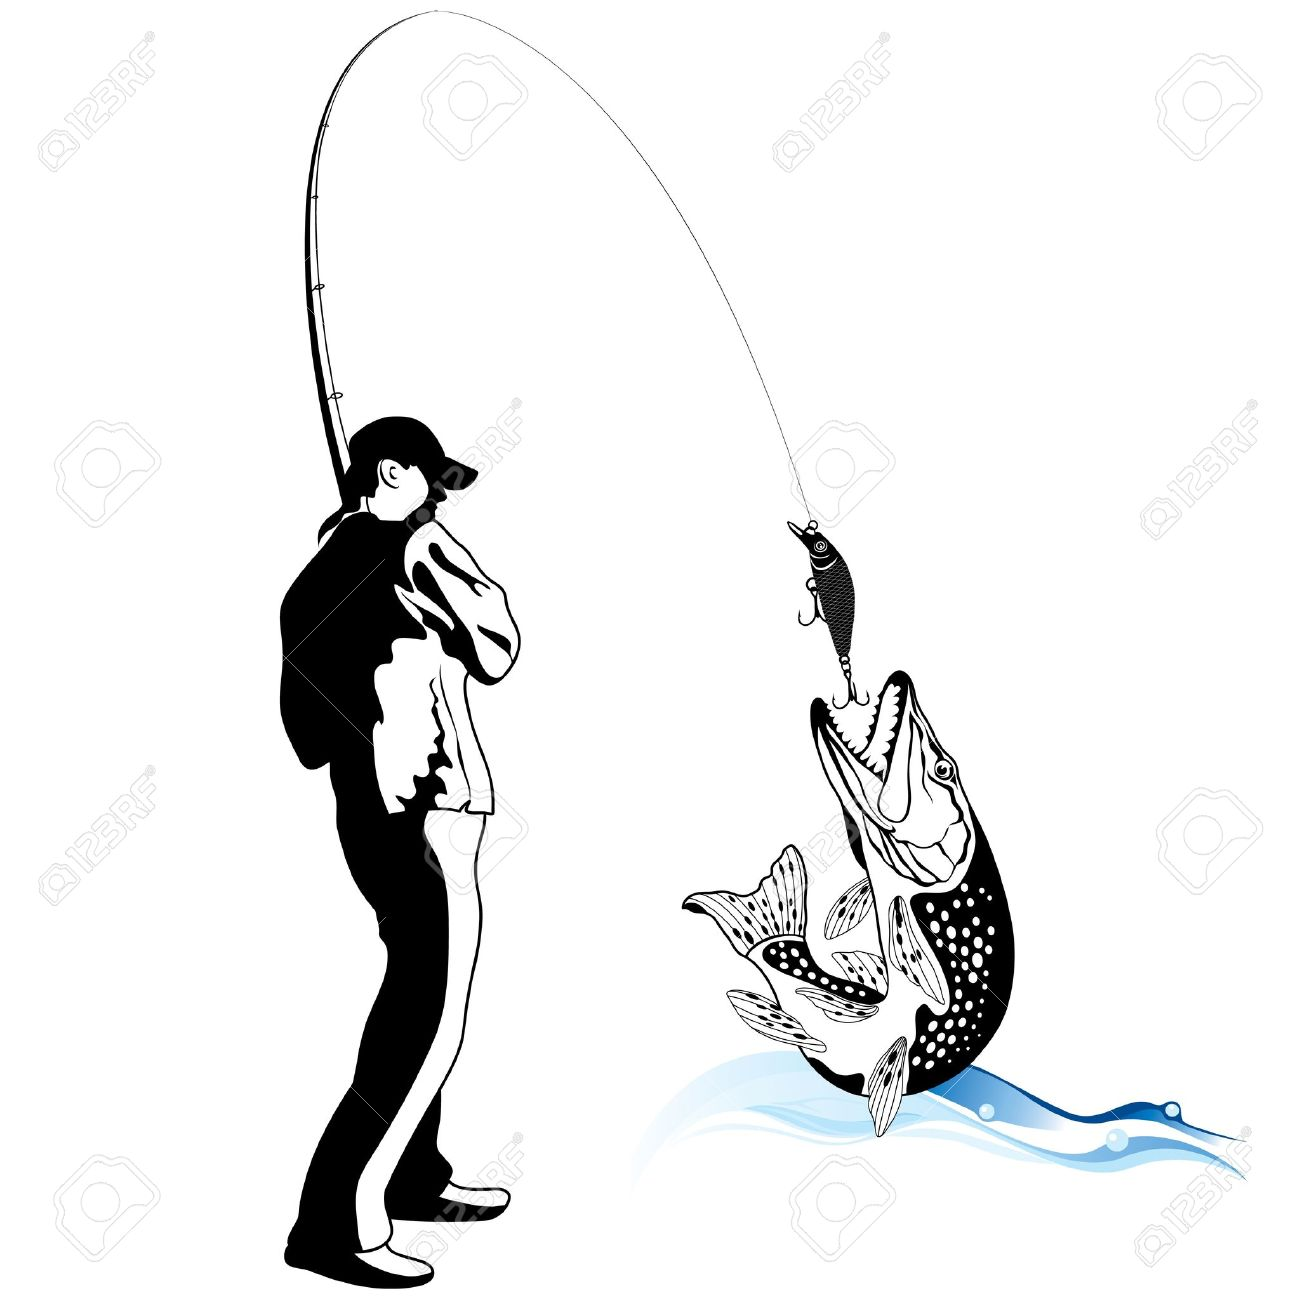 Fisherman caught a pike,  illustration Stock Vector - 17492373